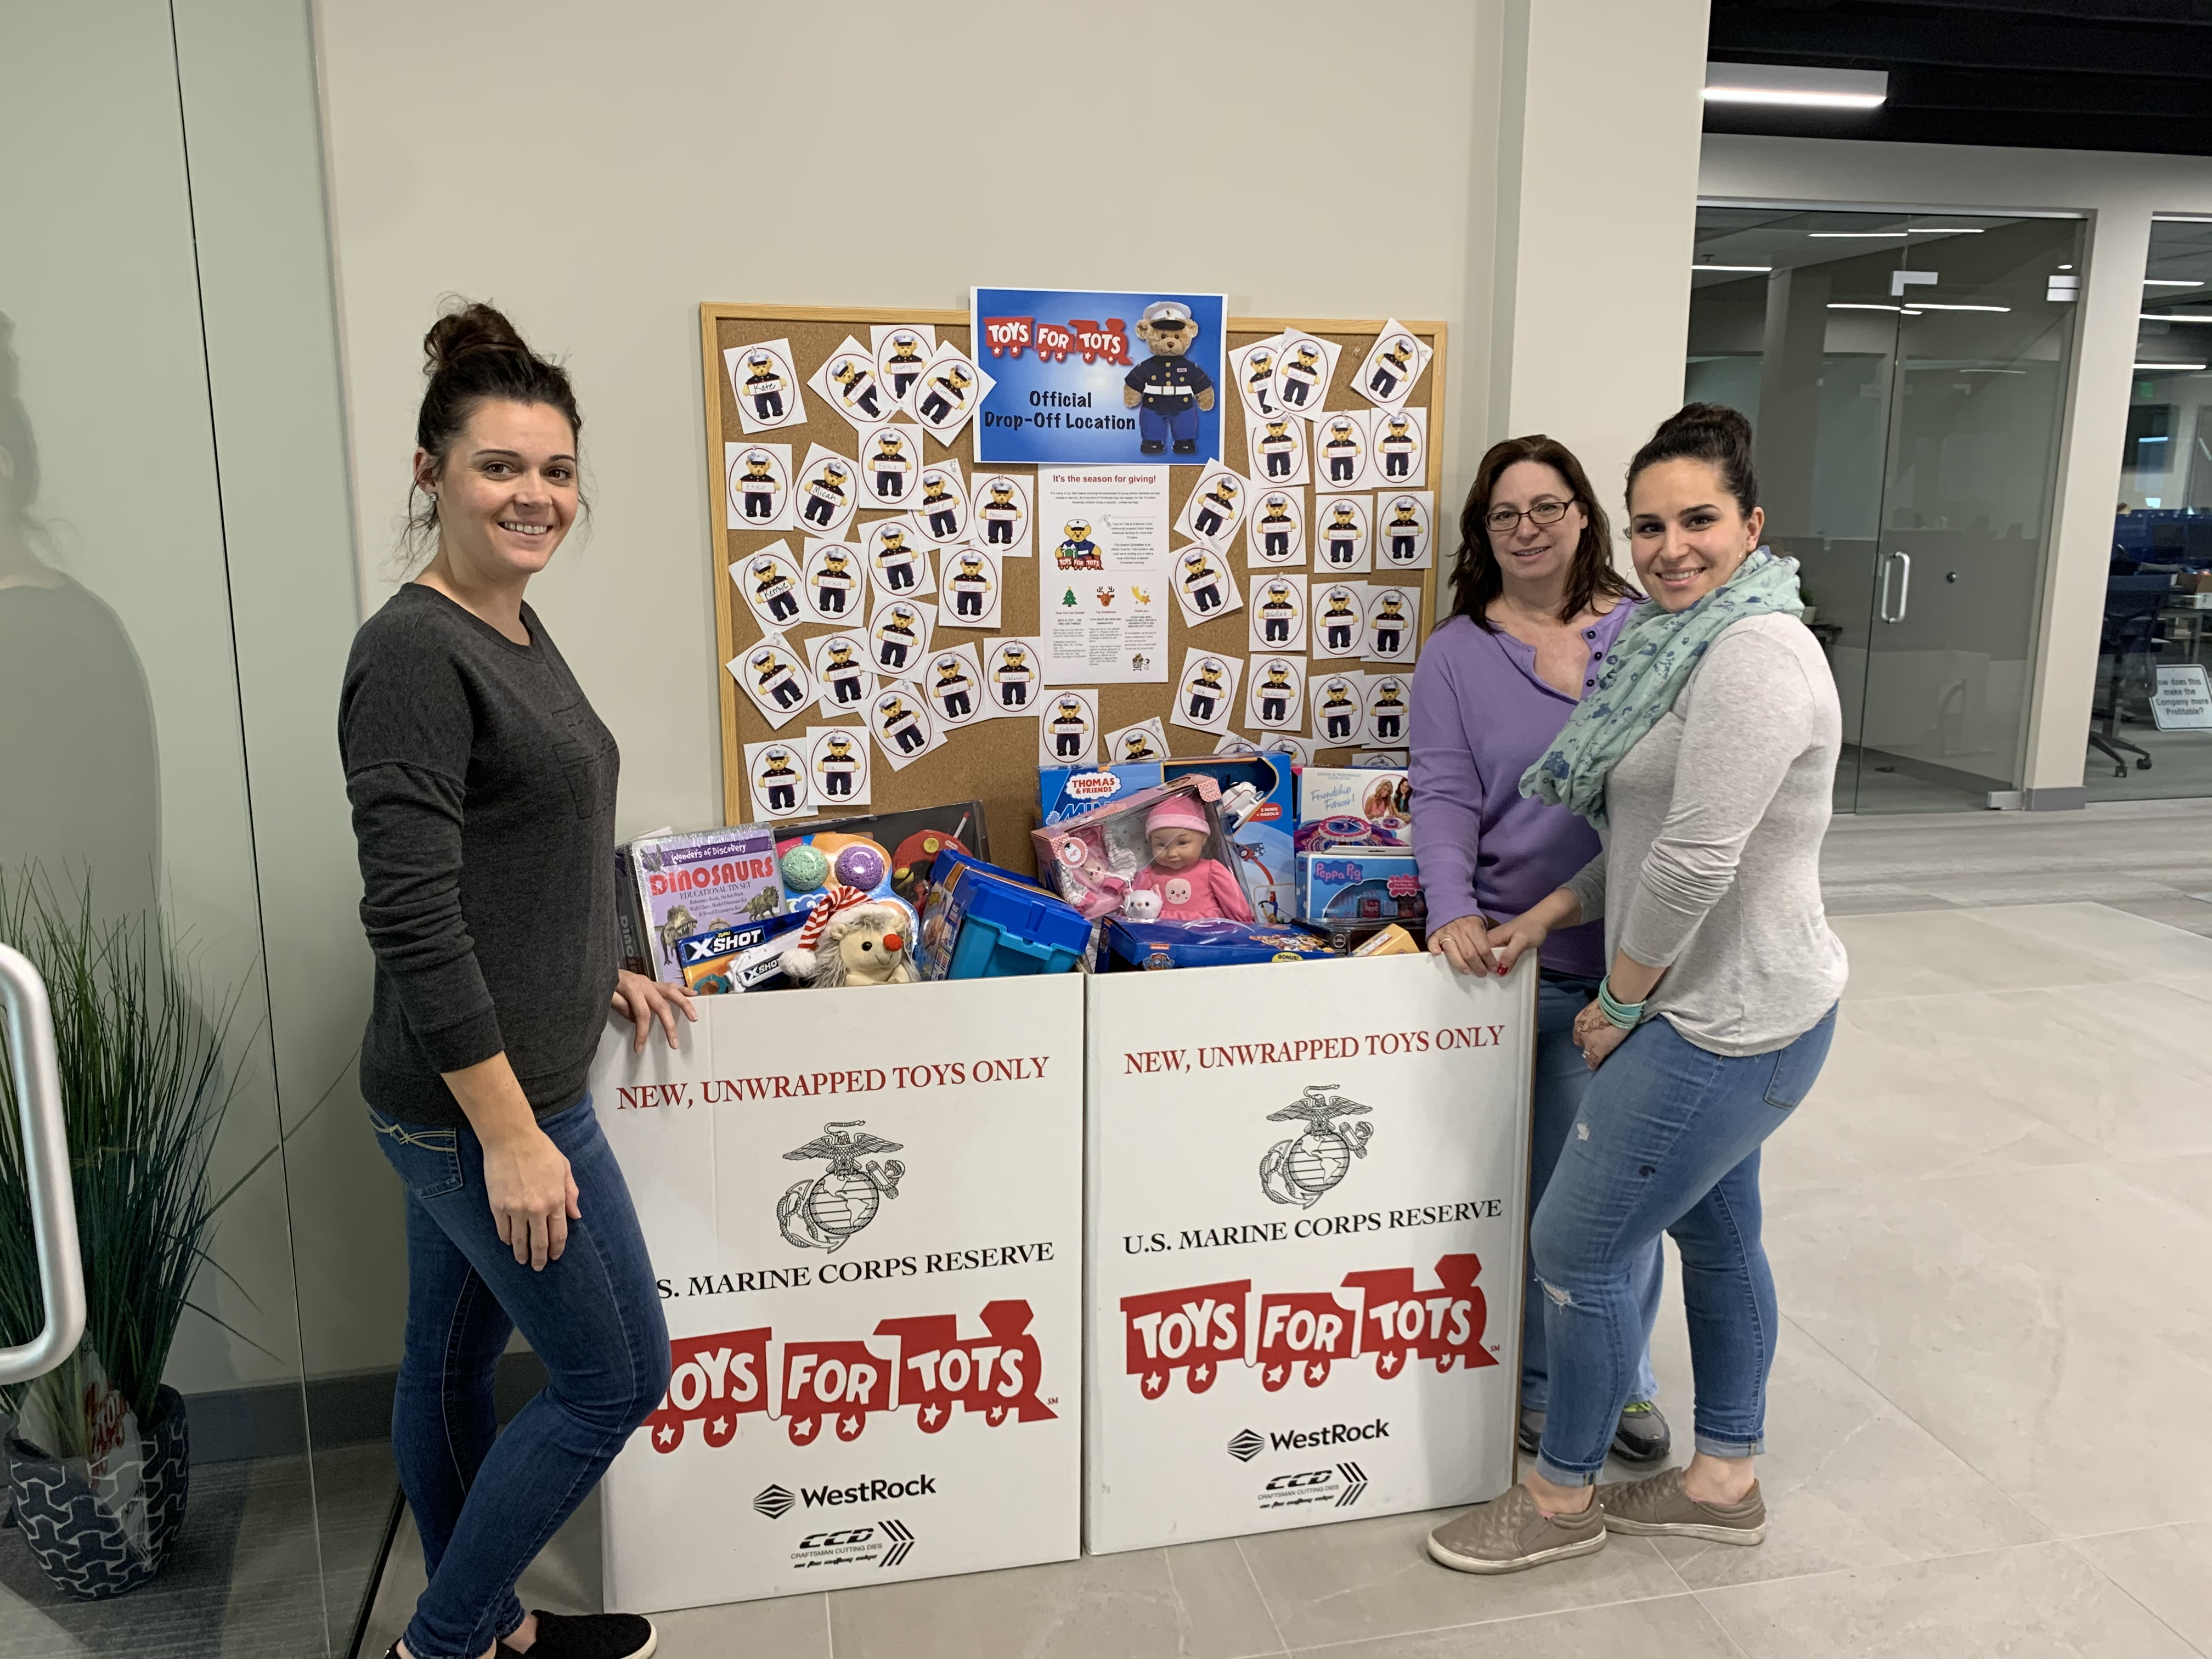 GlobalMed employees with the toys for tots boxes during the holidays